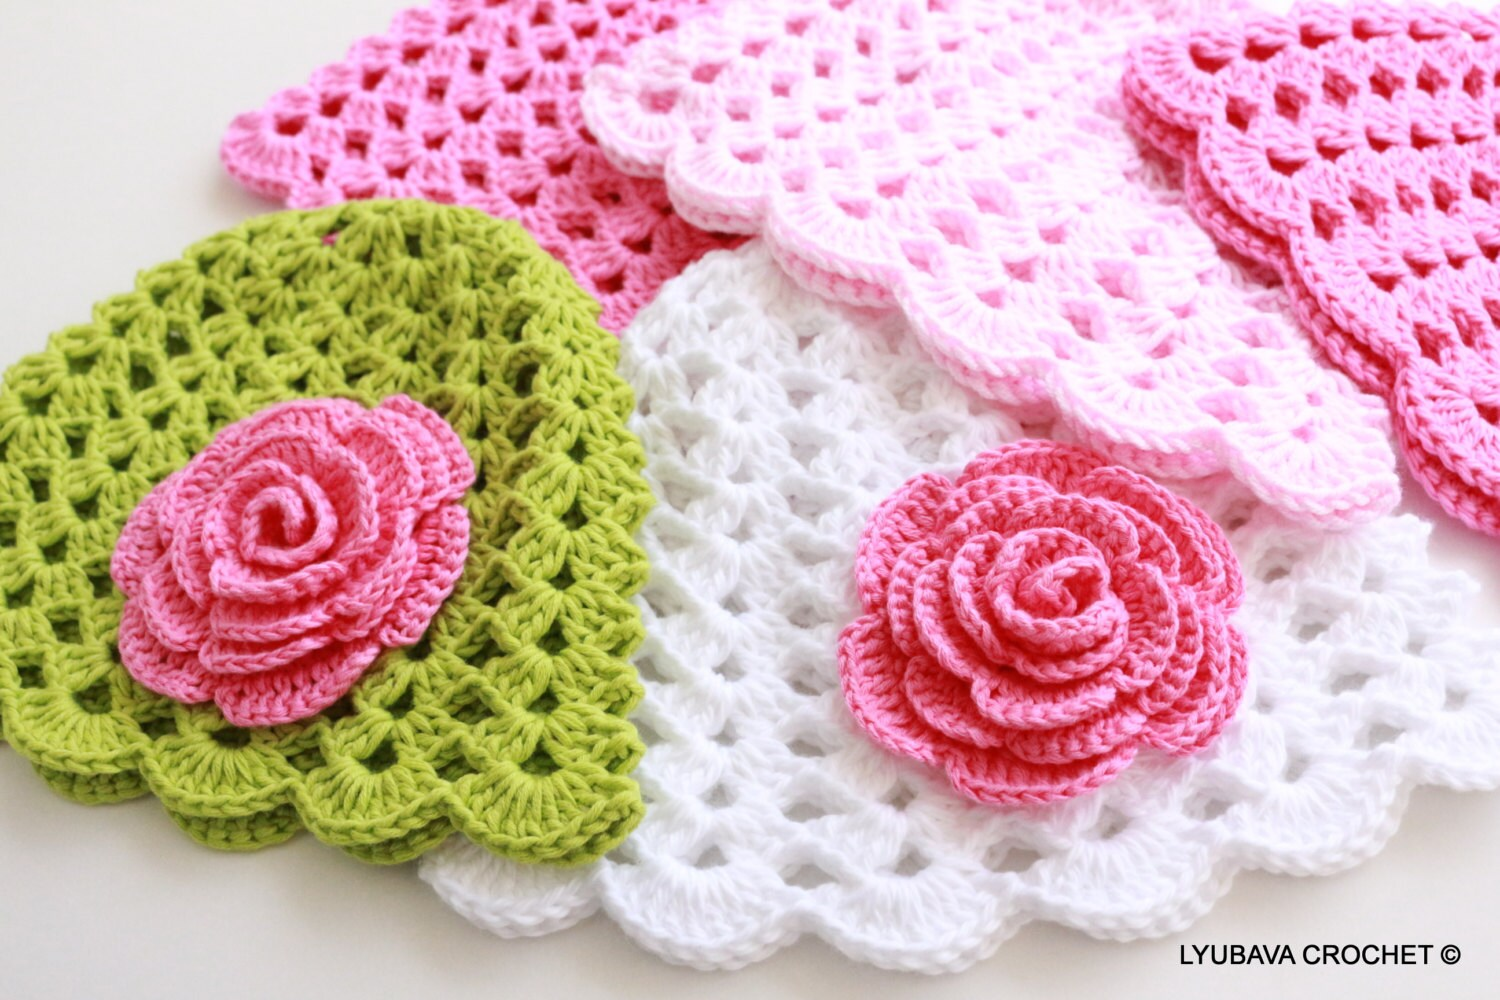 Crochet Patterns Baby Hats With Flowers : Crochet Baby Hat With Rose Flower PATTERN-Baby Girl Gift-DIY